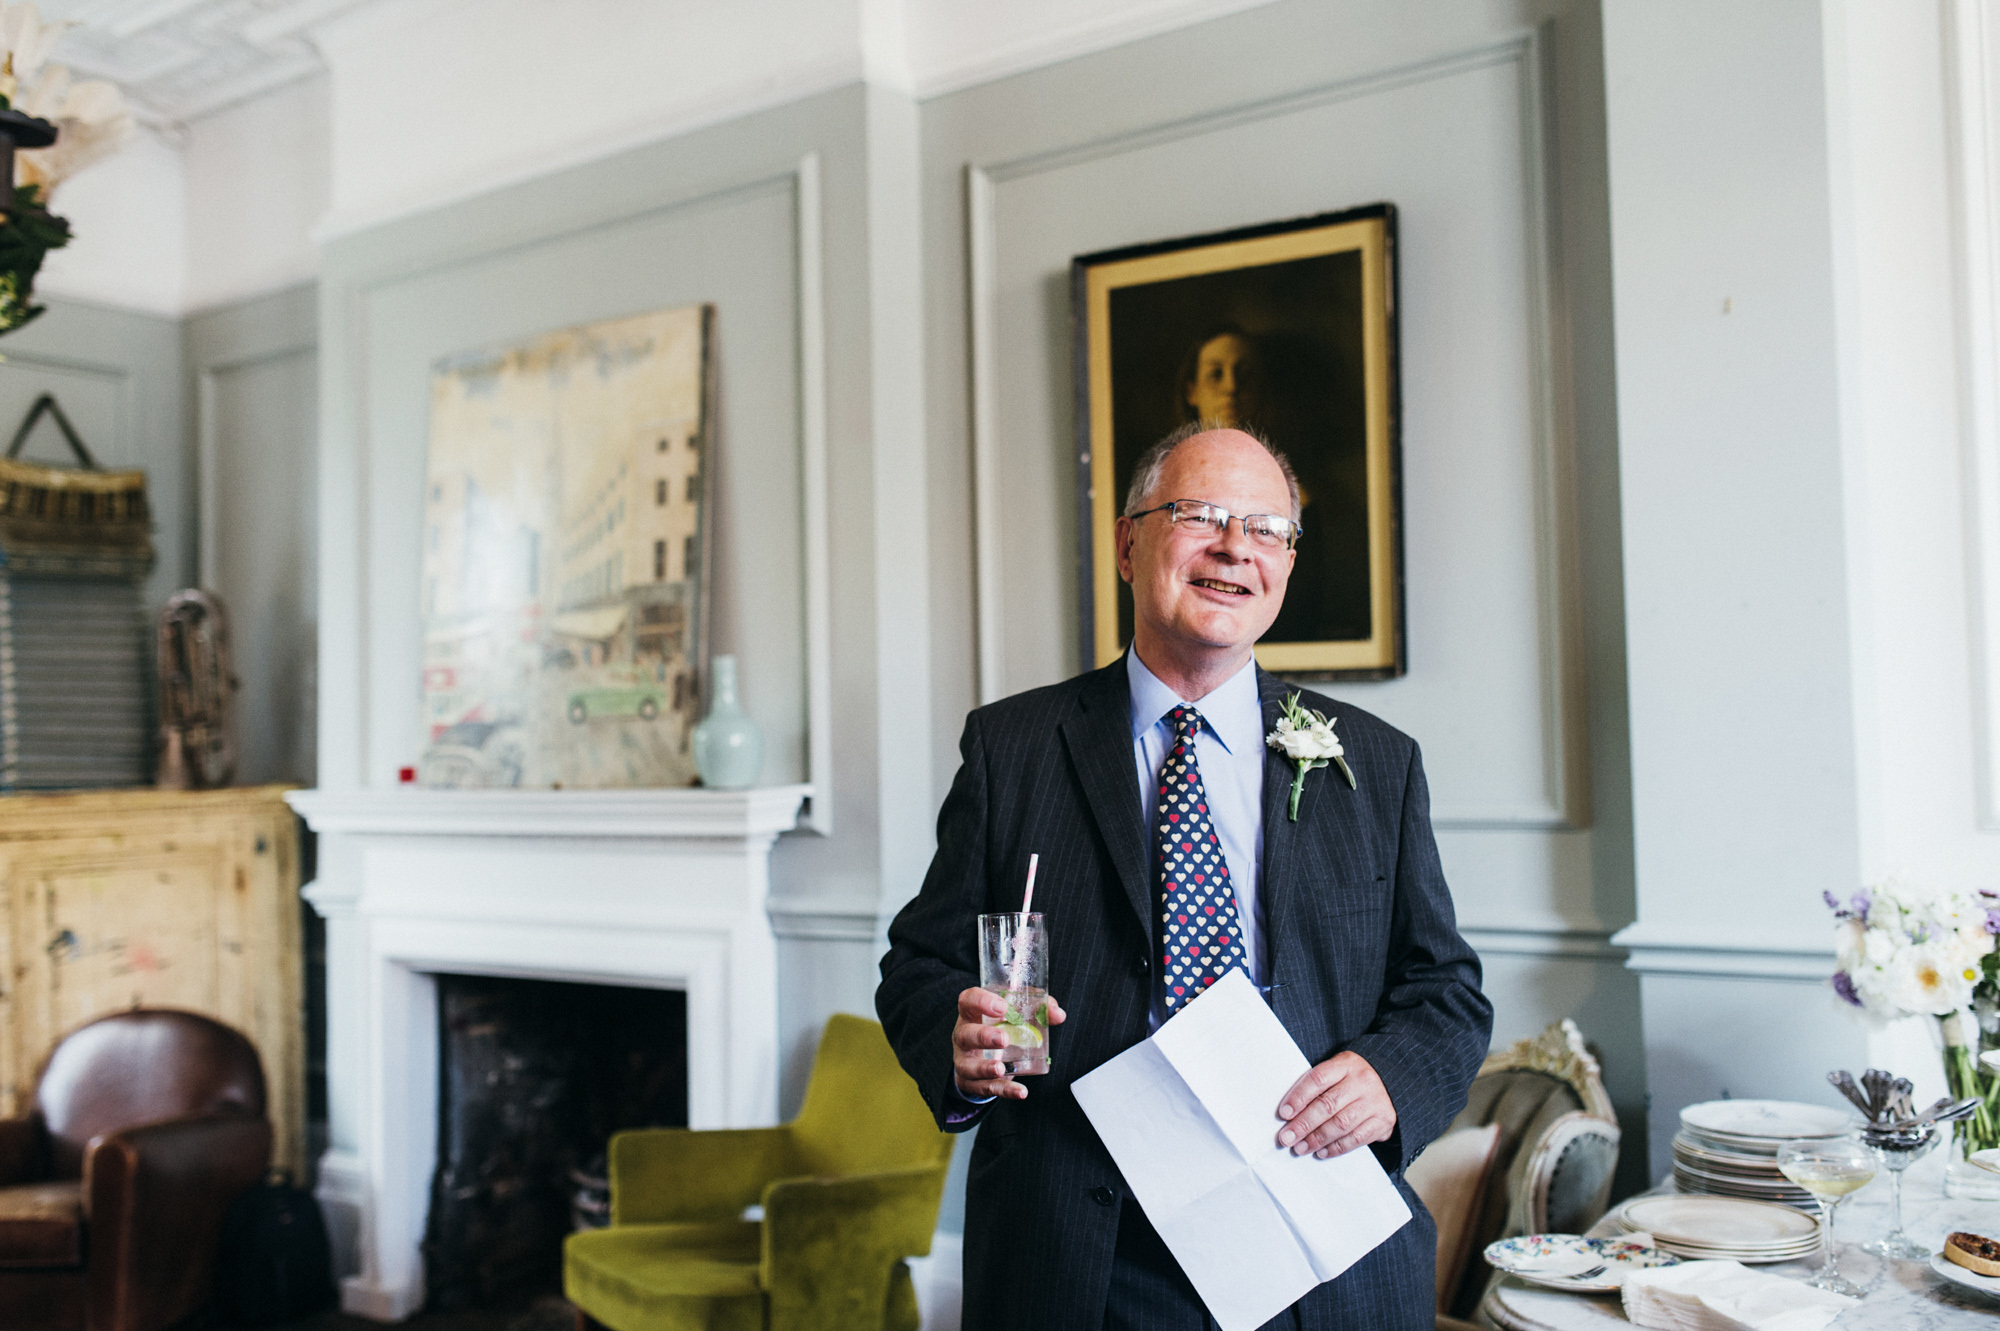 Father of the bride giving speech at gay wedding The Roost Dalston wedding - quirky London wedding photographer © Babb Photo